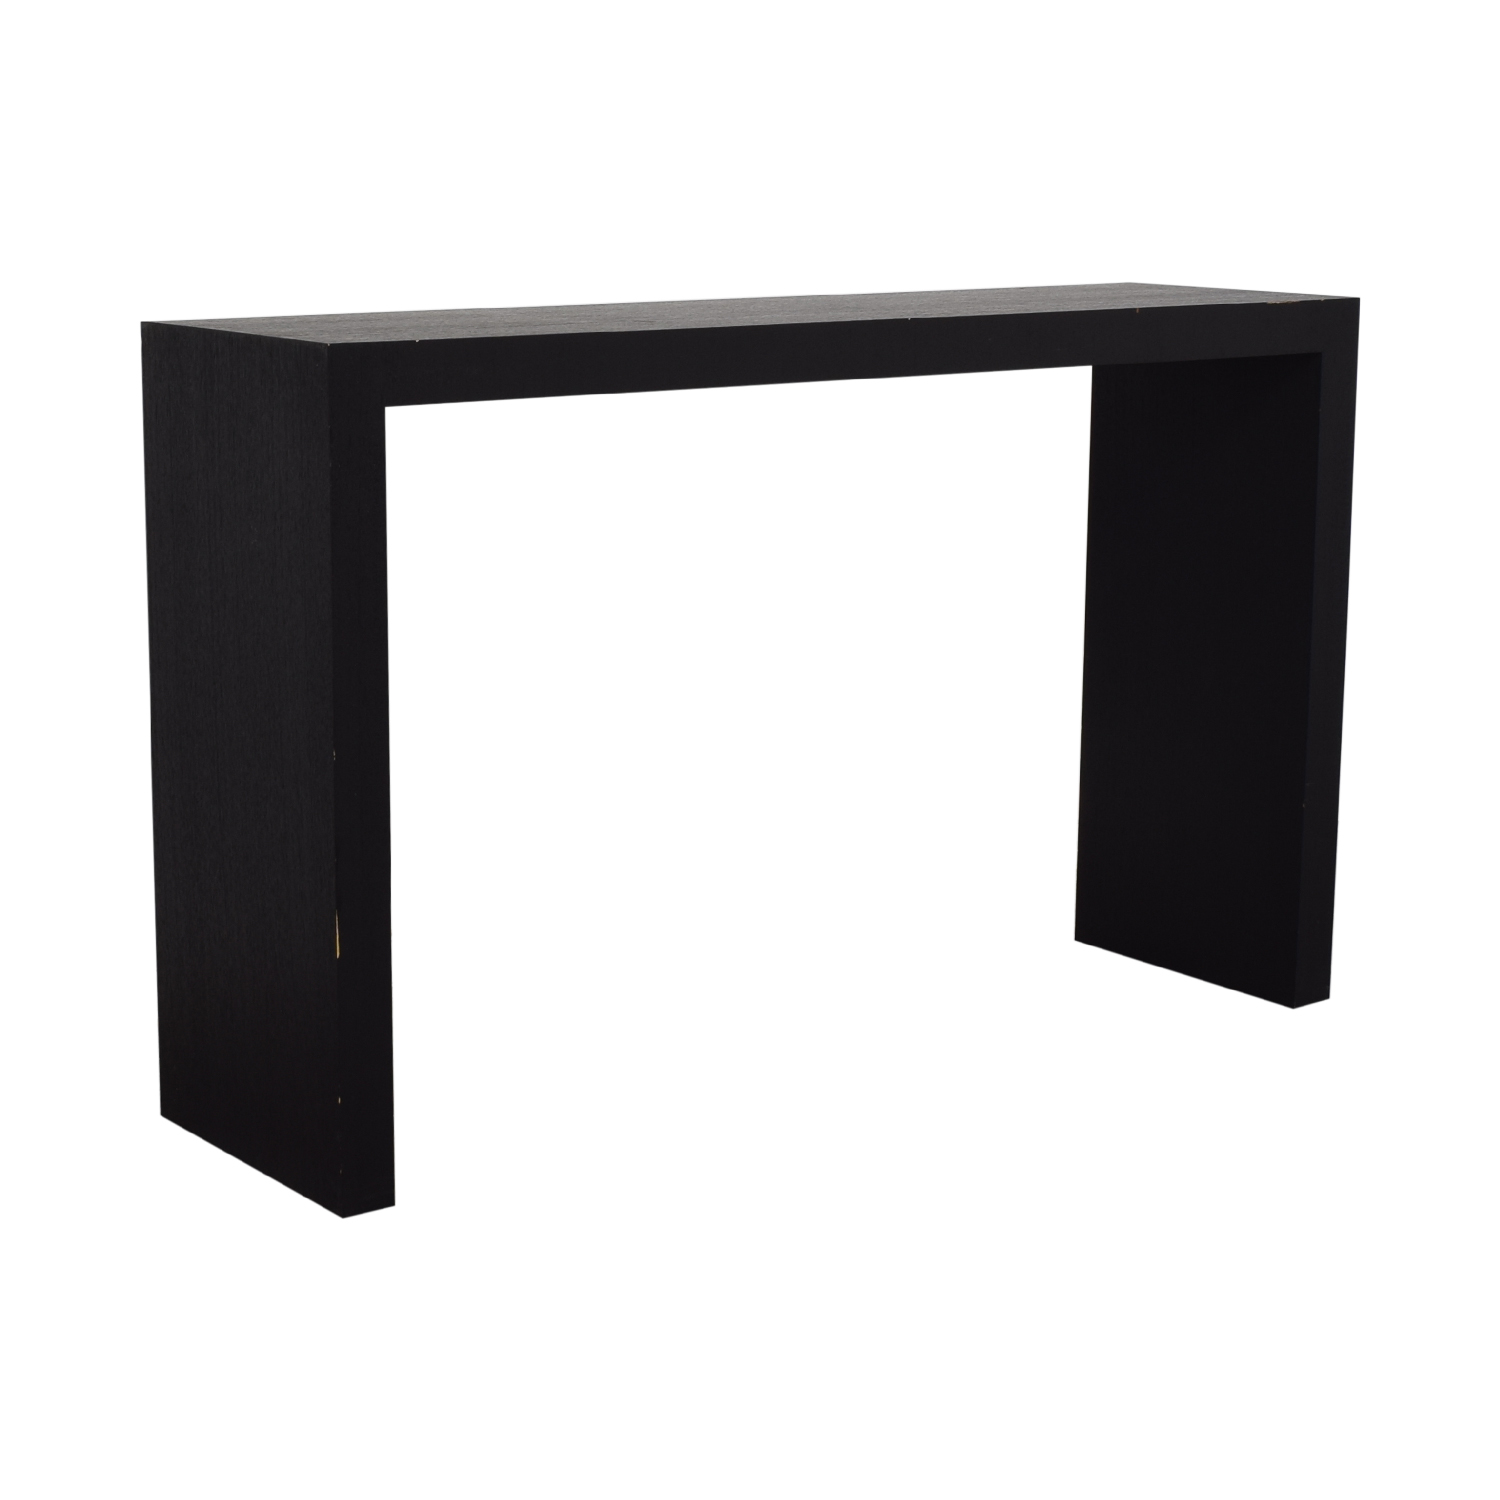 shop Armana Casa Seine Console Table Armani Casa